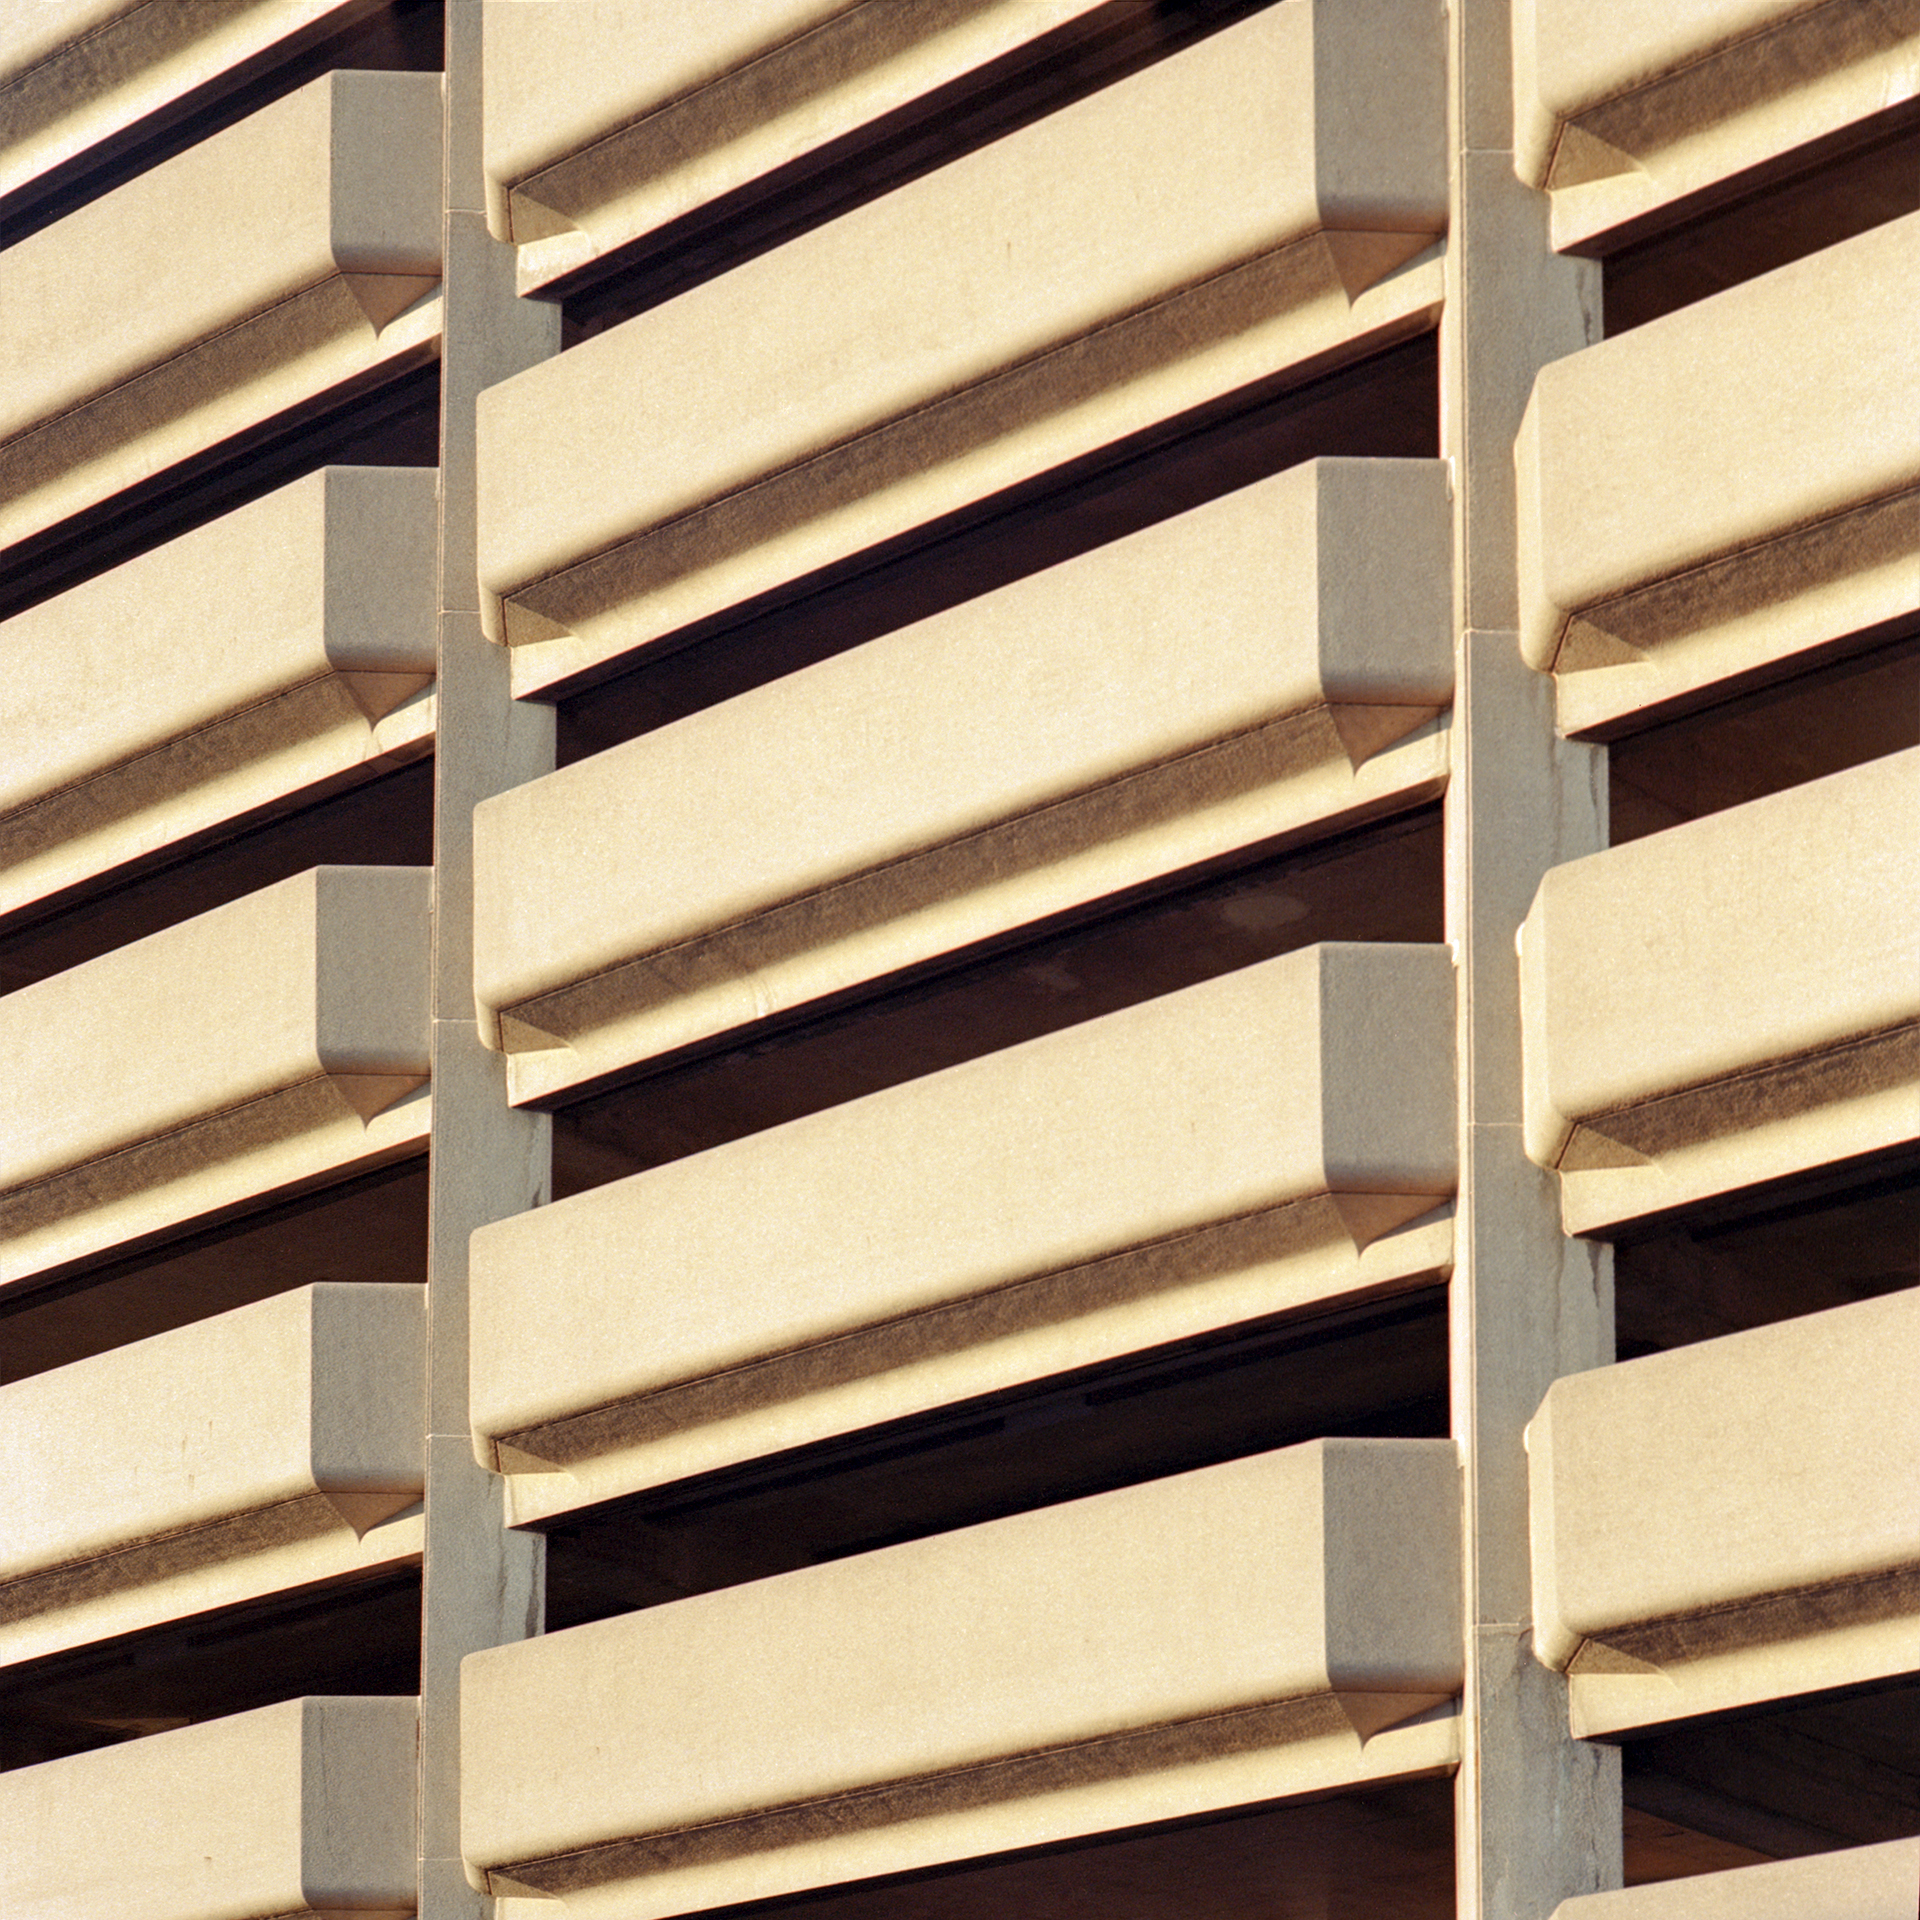 Pattern of repeating outcrops of a parking garage